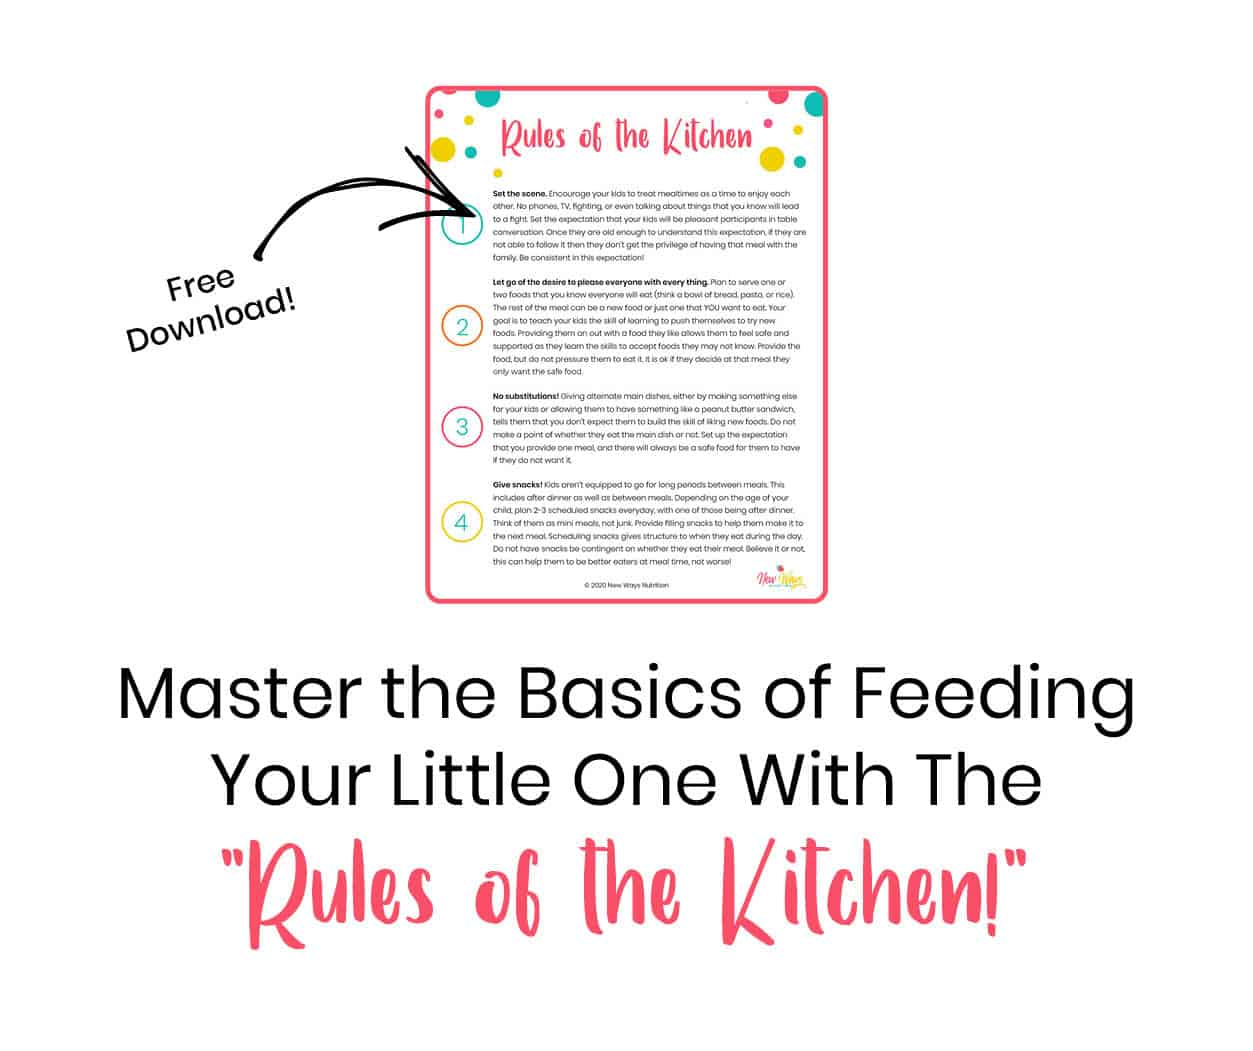 Rules of the Kitchen | New Ways Nutrition